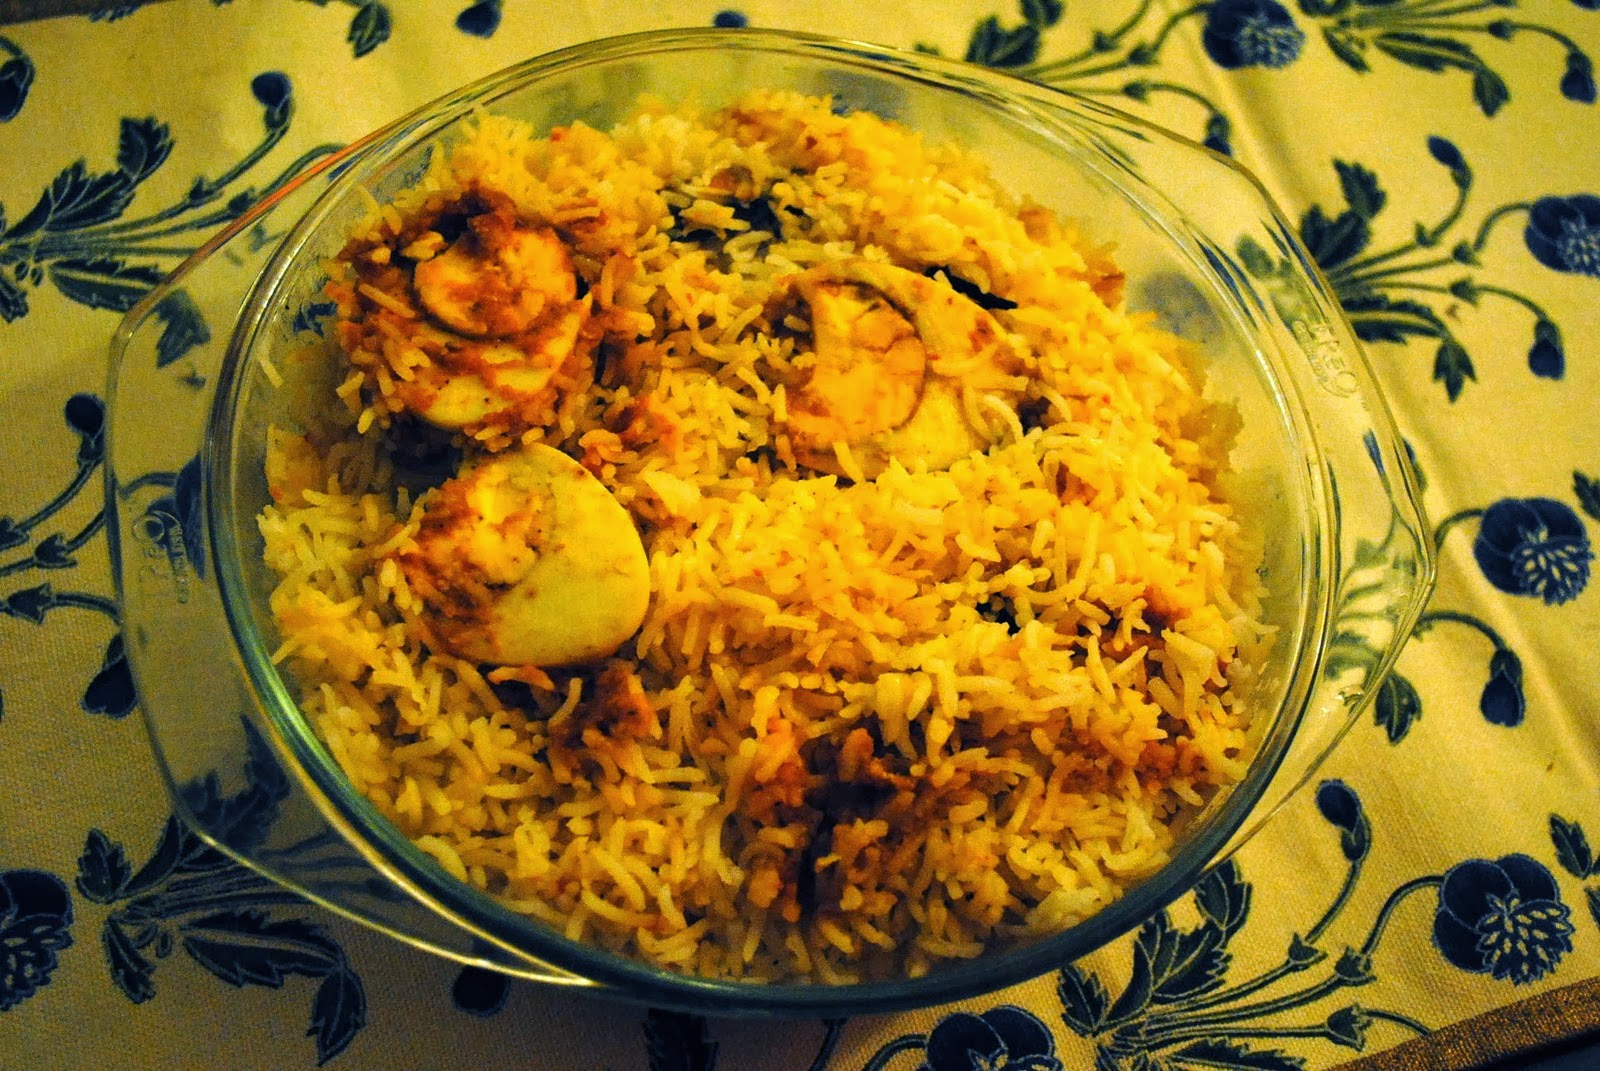 Hot Hot Egg biryani